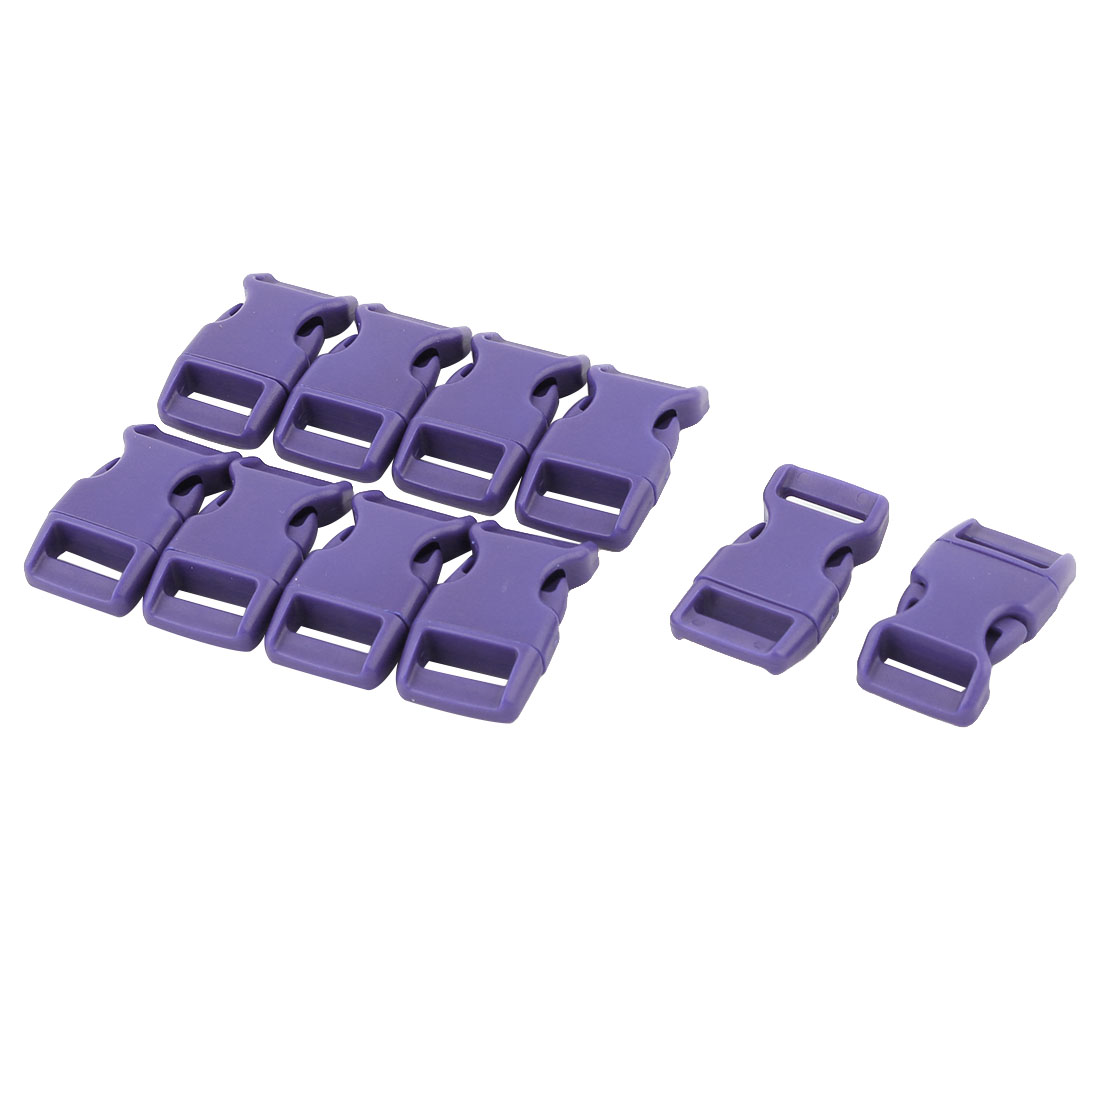 Handbag Plastic Strap Webbing Adjustive Connecting Quick Release Buckle Purple 10 Pcs